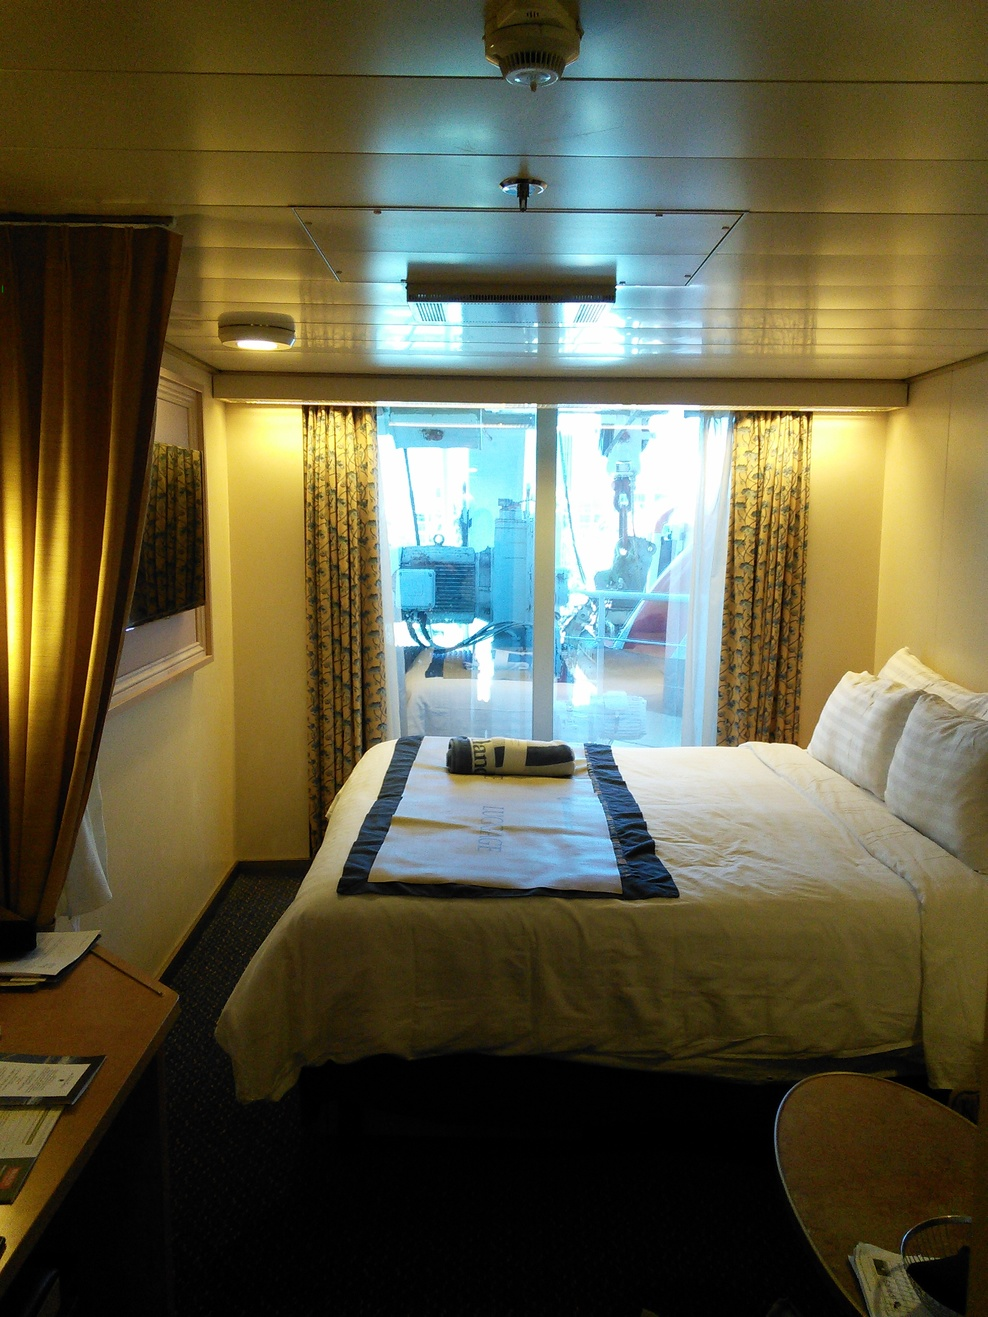 Cabin On Holland America Oosterdam Cruise Ship Cruise Critic